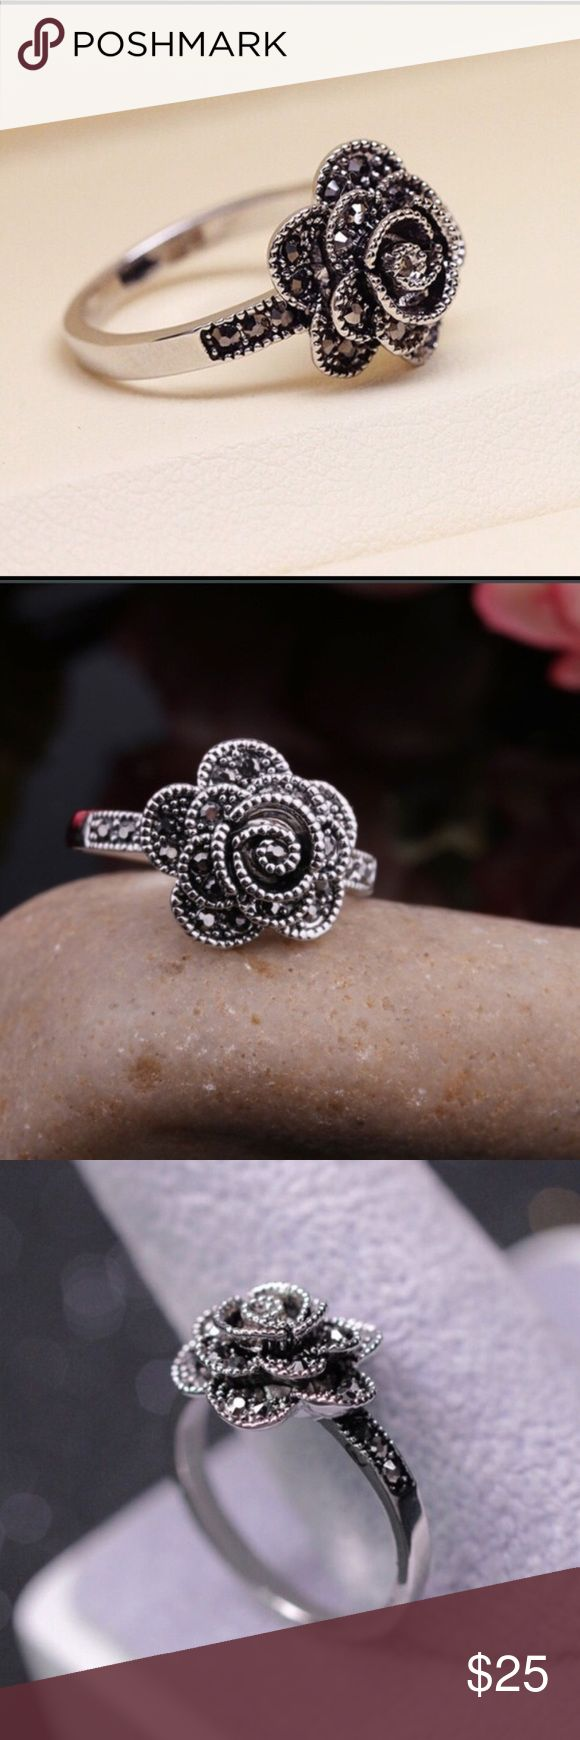 Marcasite Rose Ring Such a beautiful shiny marcasite ring! Rose design with tiny black stones. Never worn, brand new! Jewelry Rings